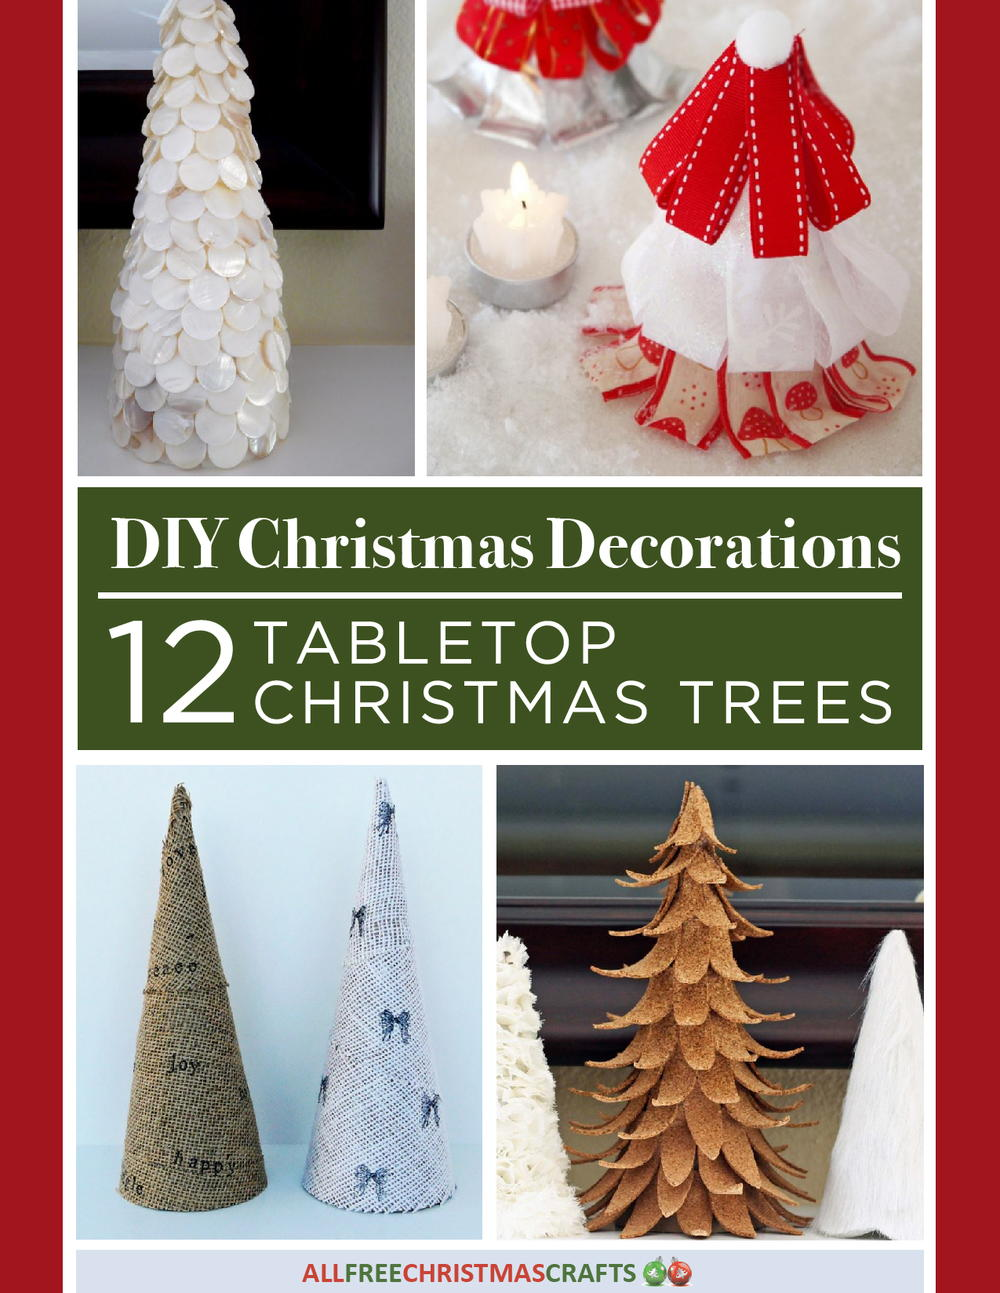 Diy Christmas Tree Table Decoration : Diy christmas decorations tabletop trees